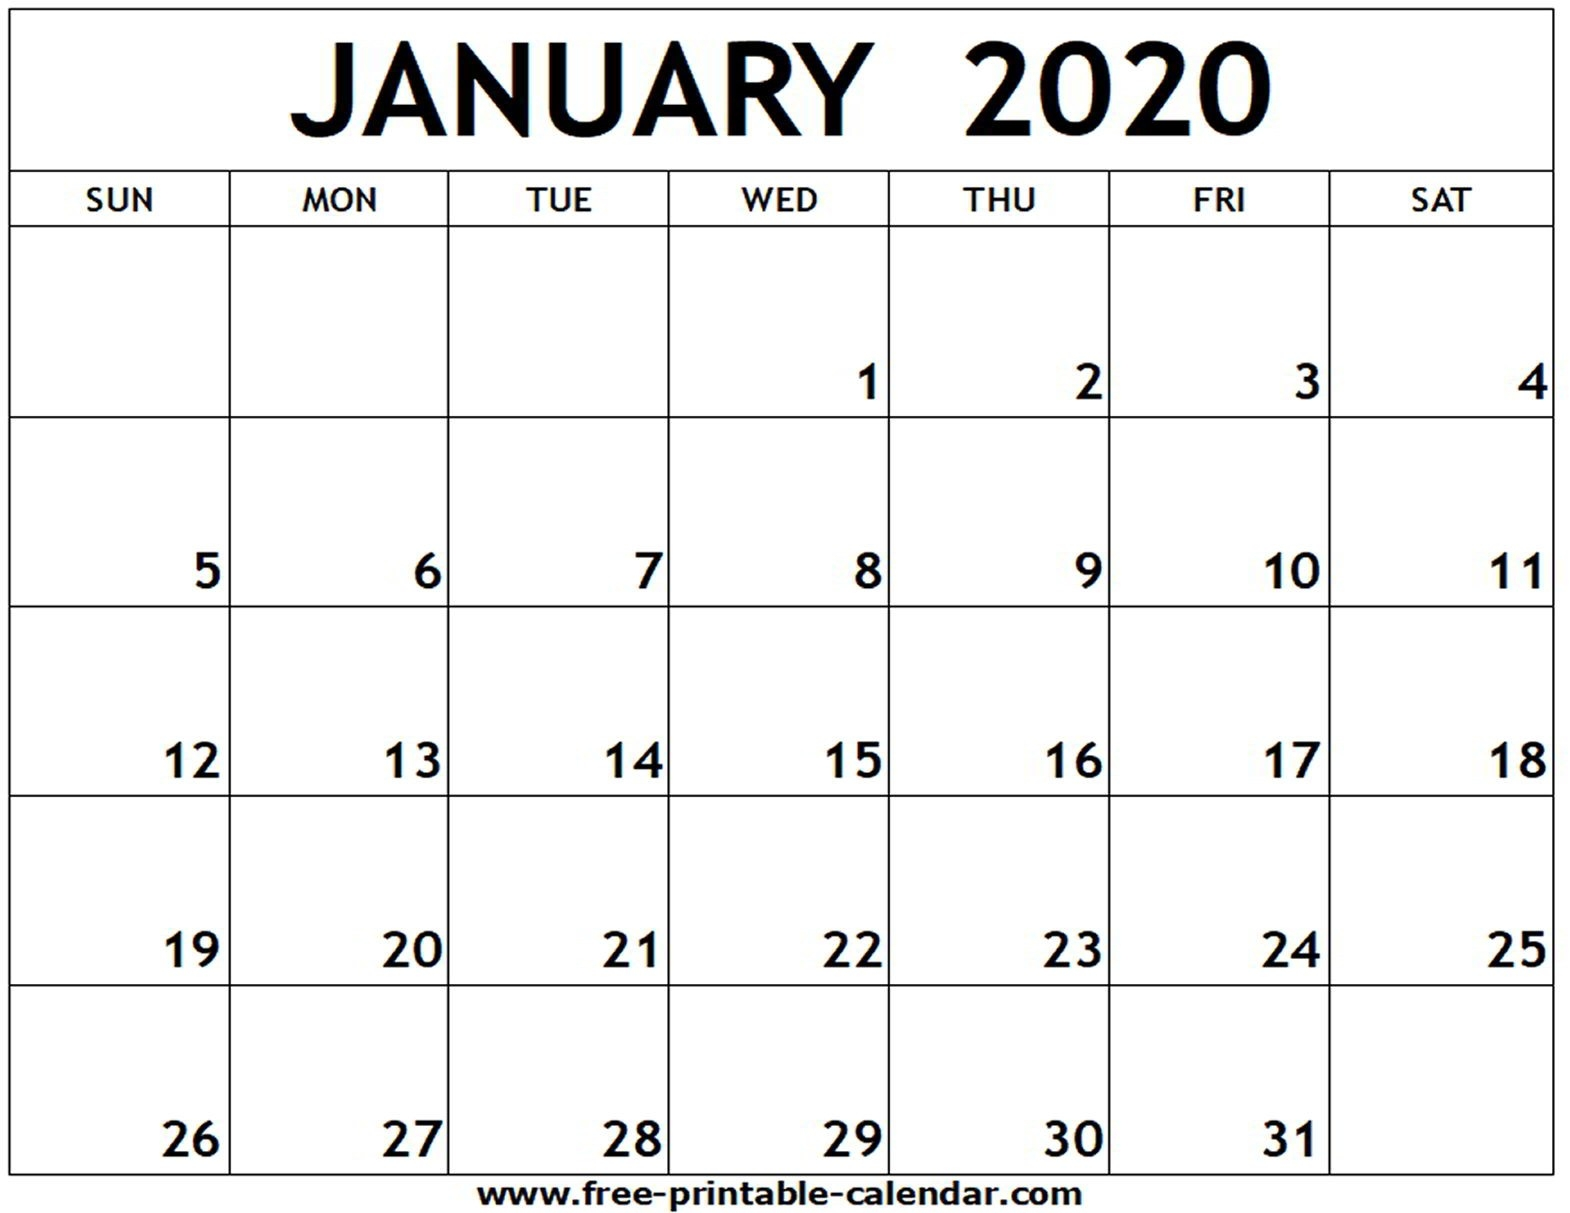 January 2020 Printable Calendar - Free-Printable-Calendar  Fill In Calendar 2020 Printable